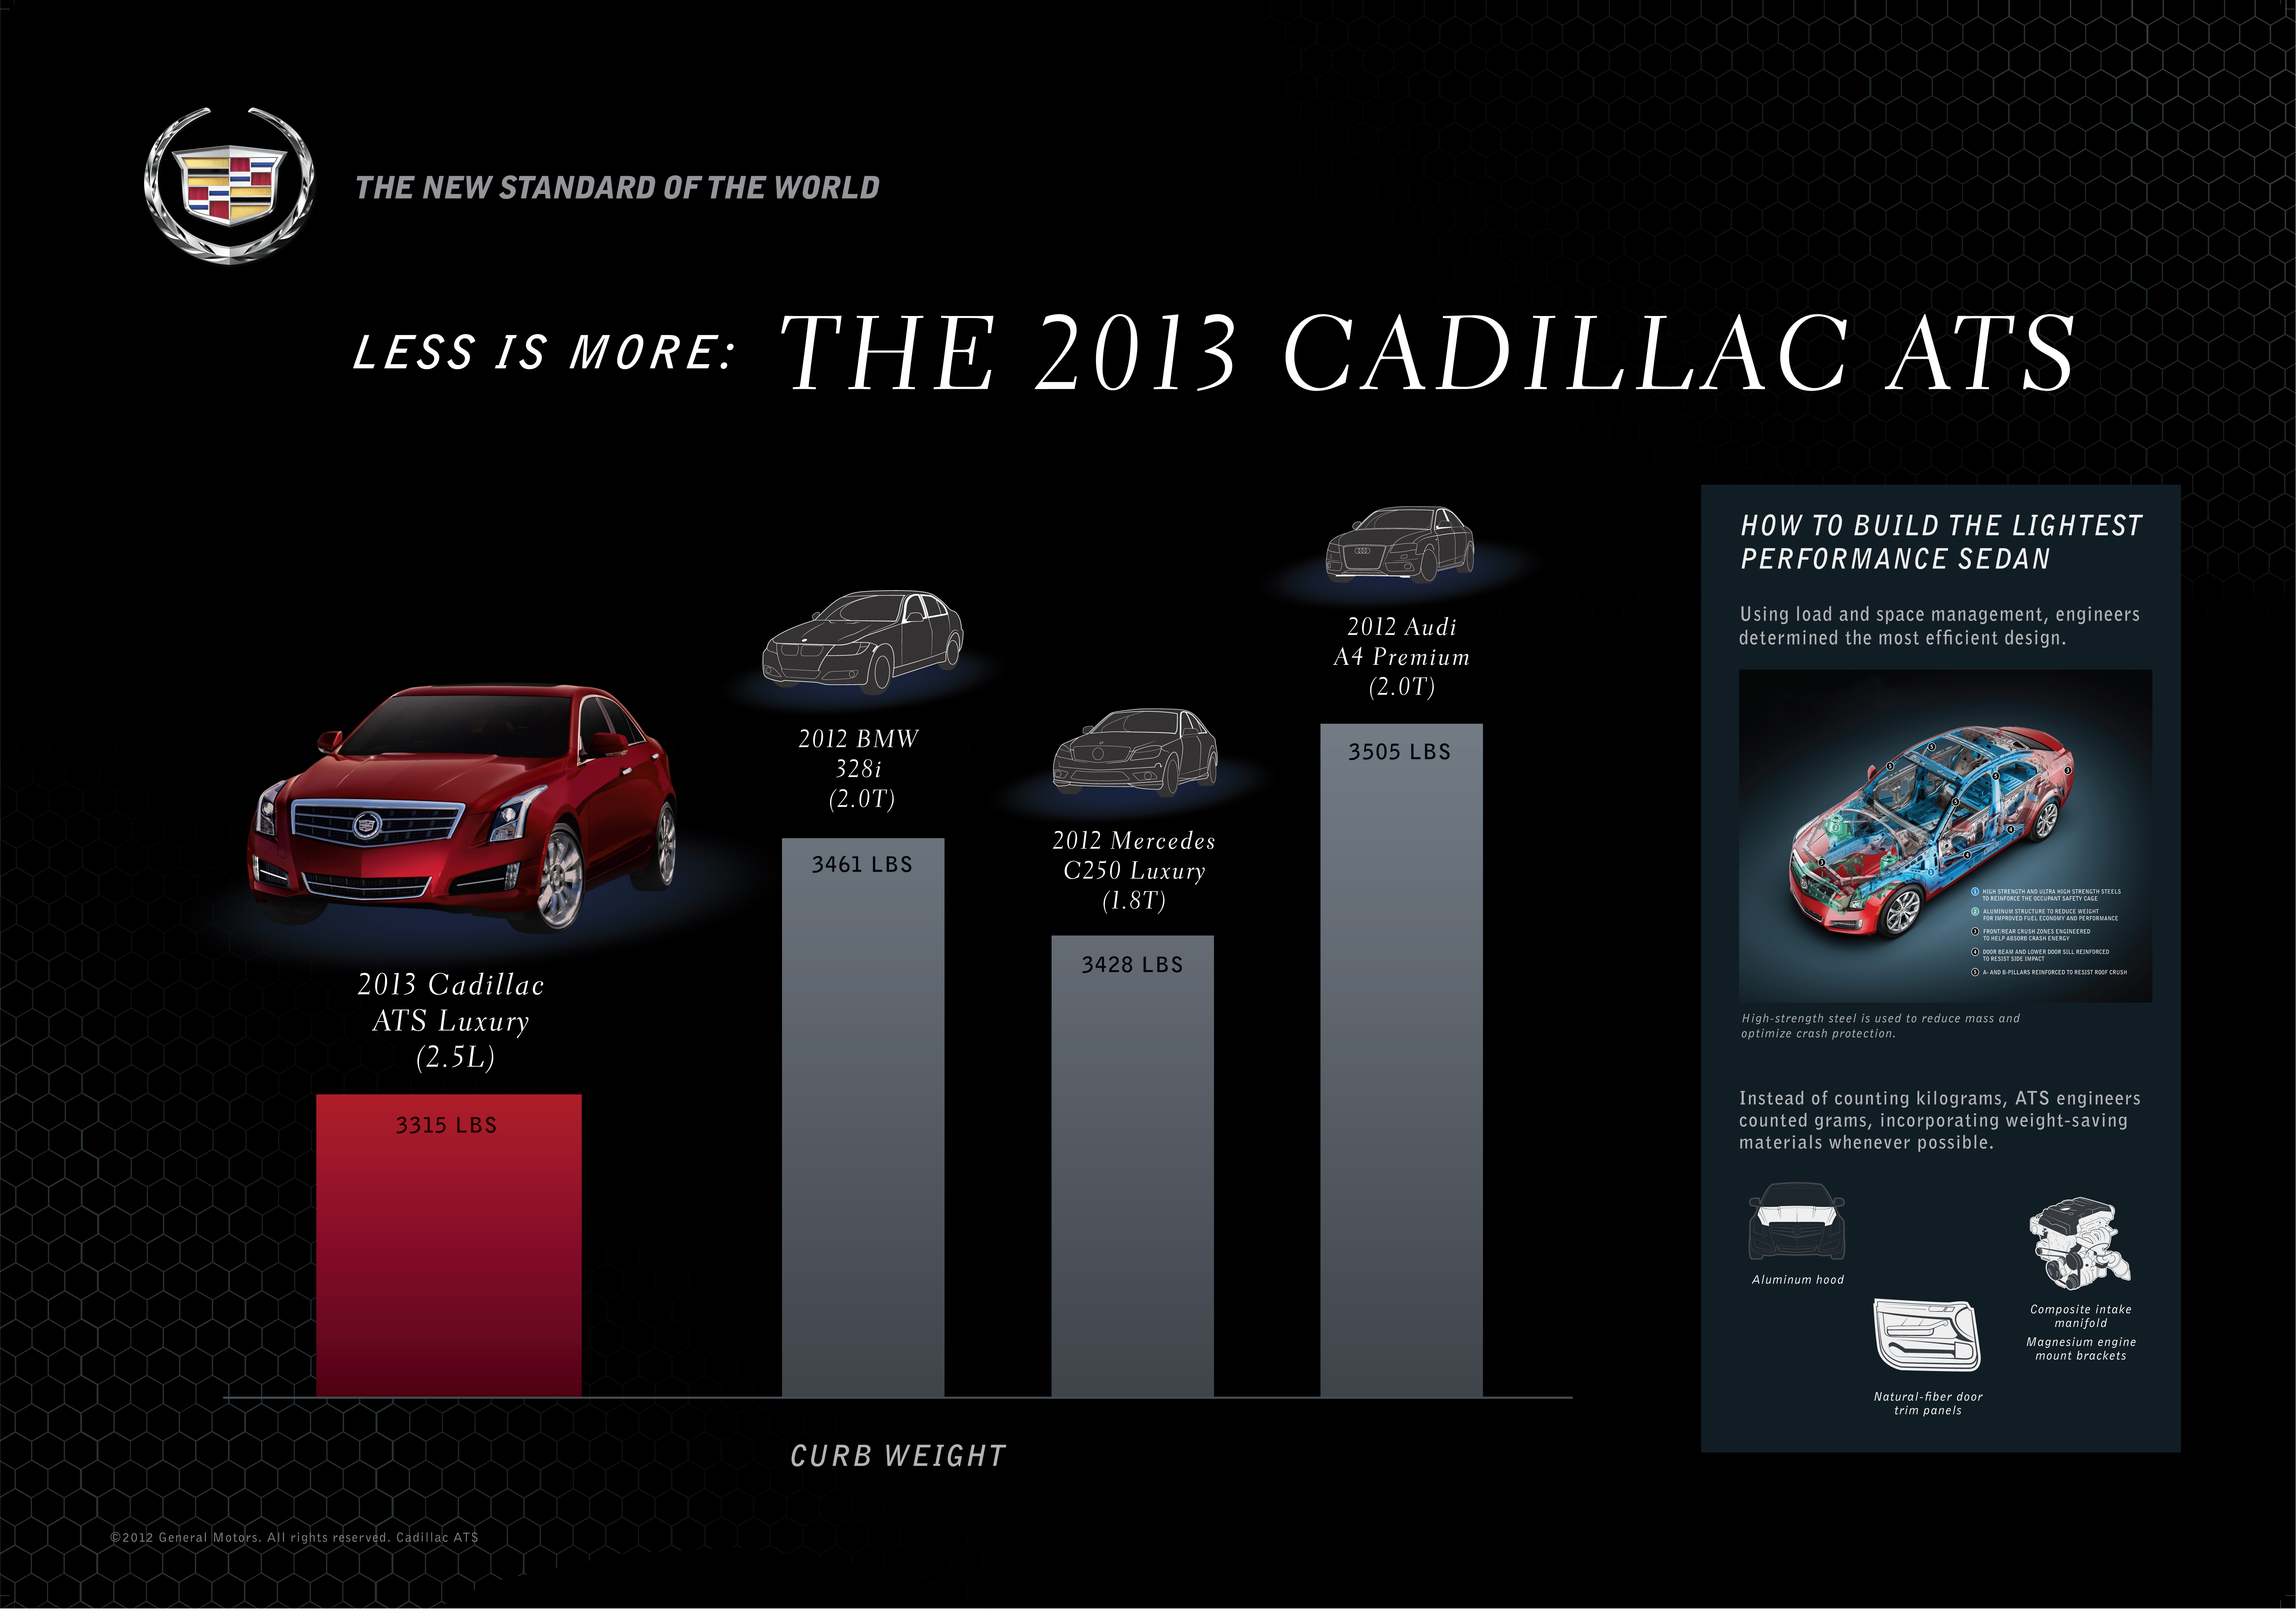 Cadillac atss lighter weight is competitive advantage publicscrutiny Image collections